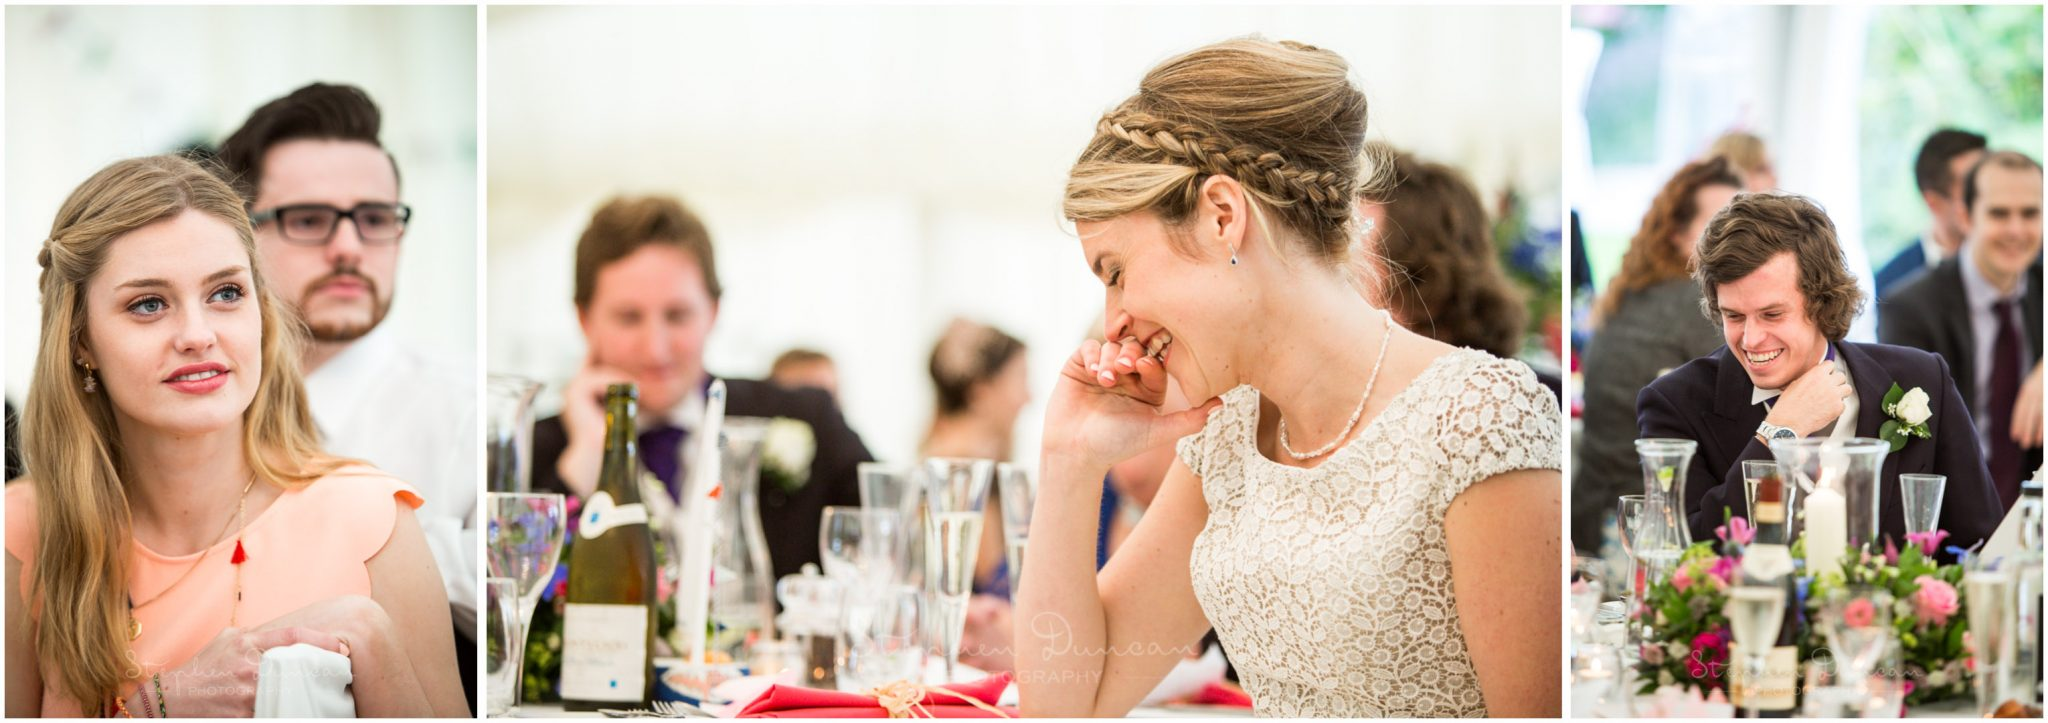 Lymington wedding photography couple listen to speeches